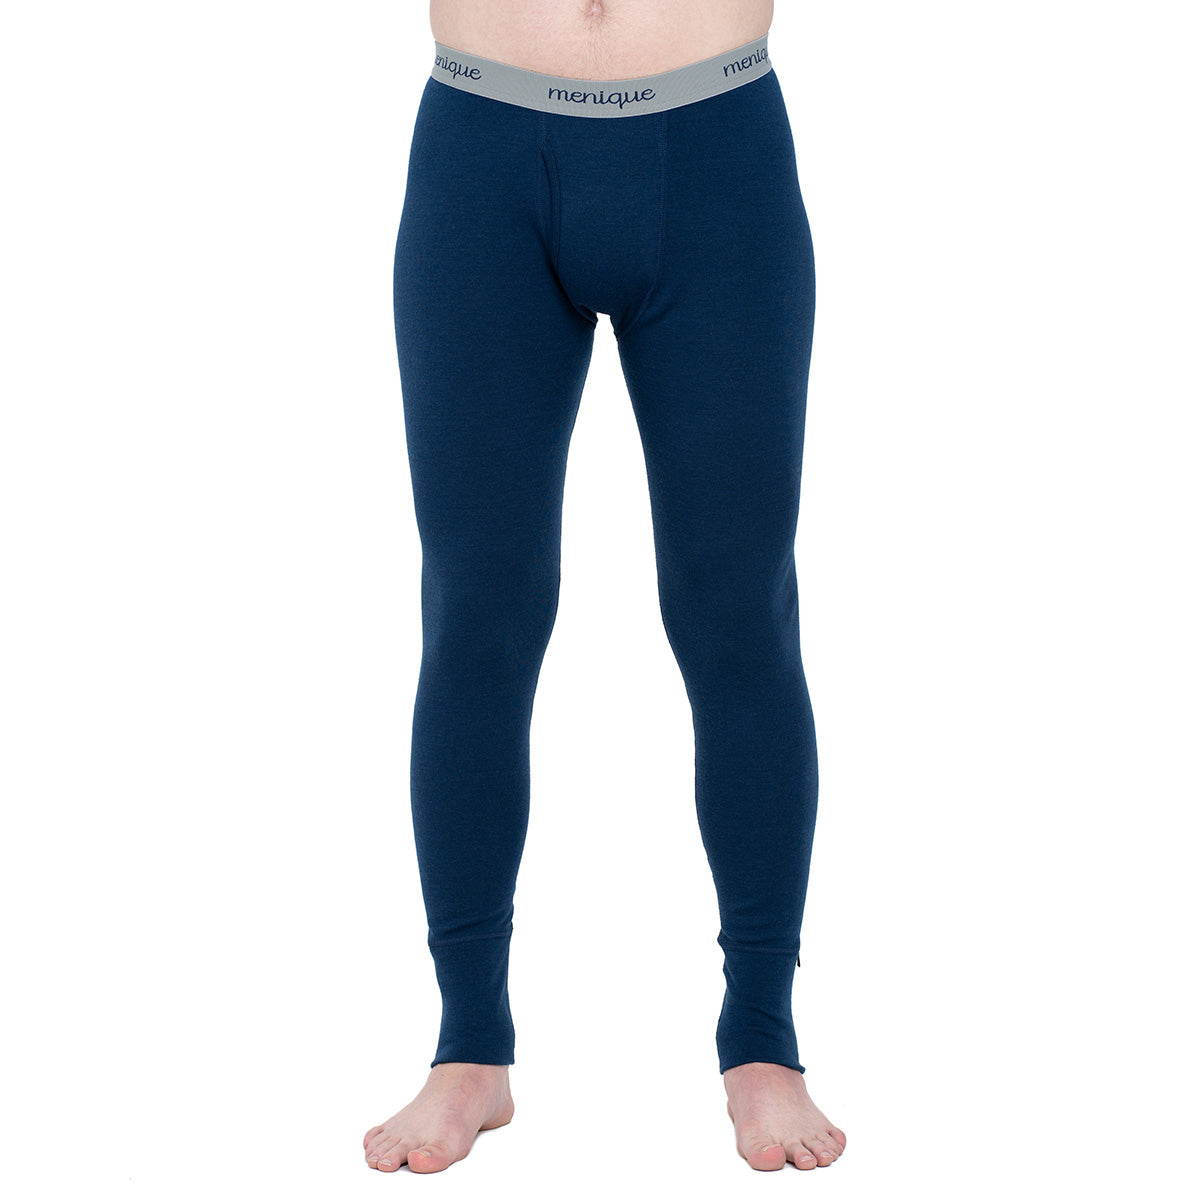 menique Men's Merino 250 Pants RB Dark Blue Color